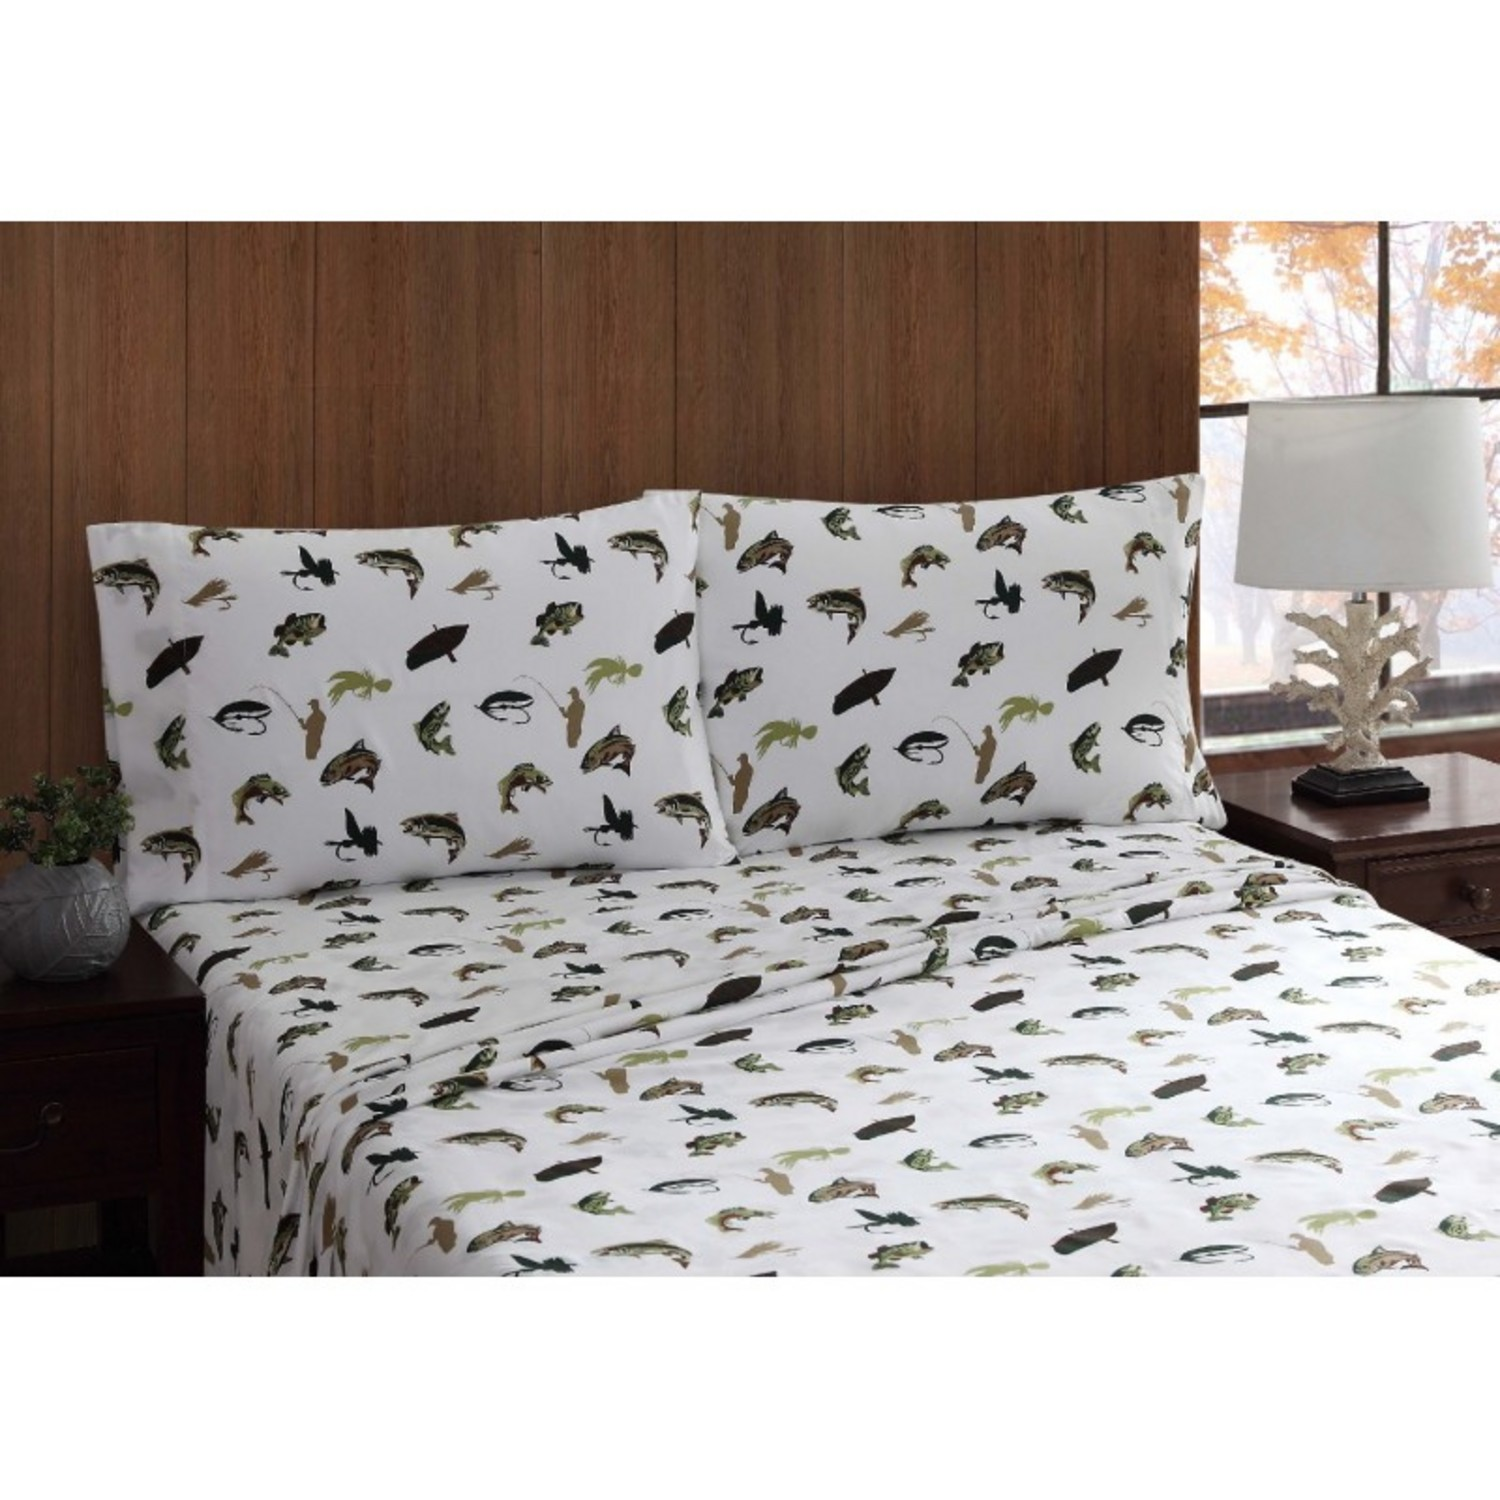 Fly Fishing Sheet Set By Remington Pem America